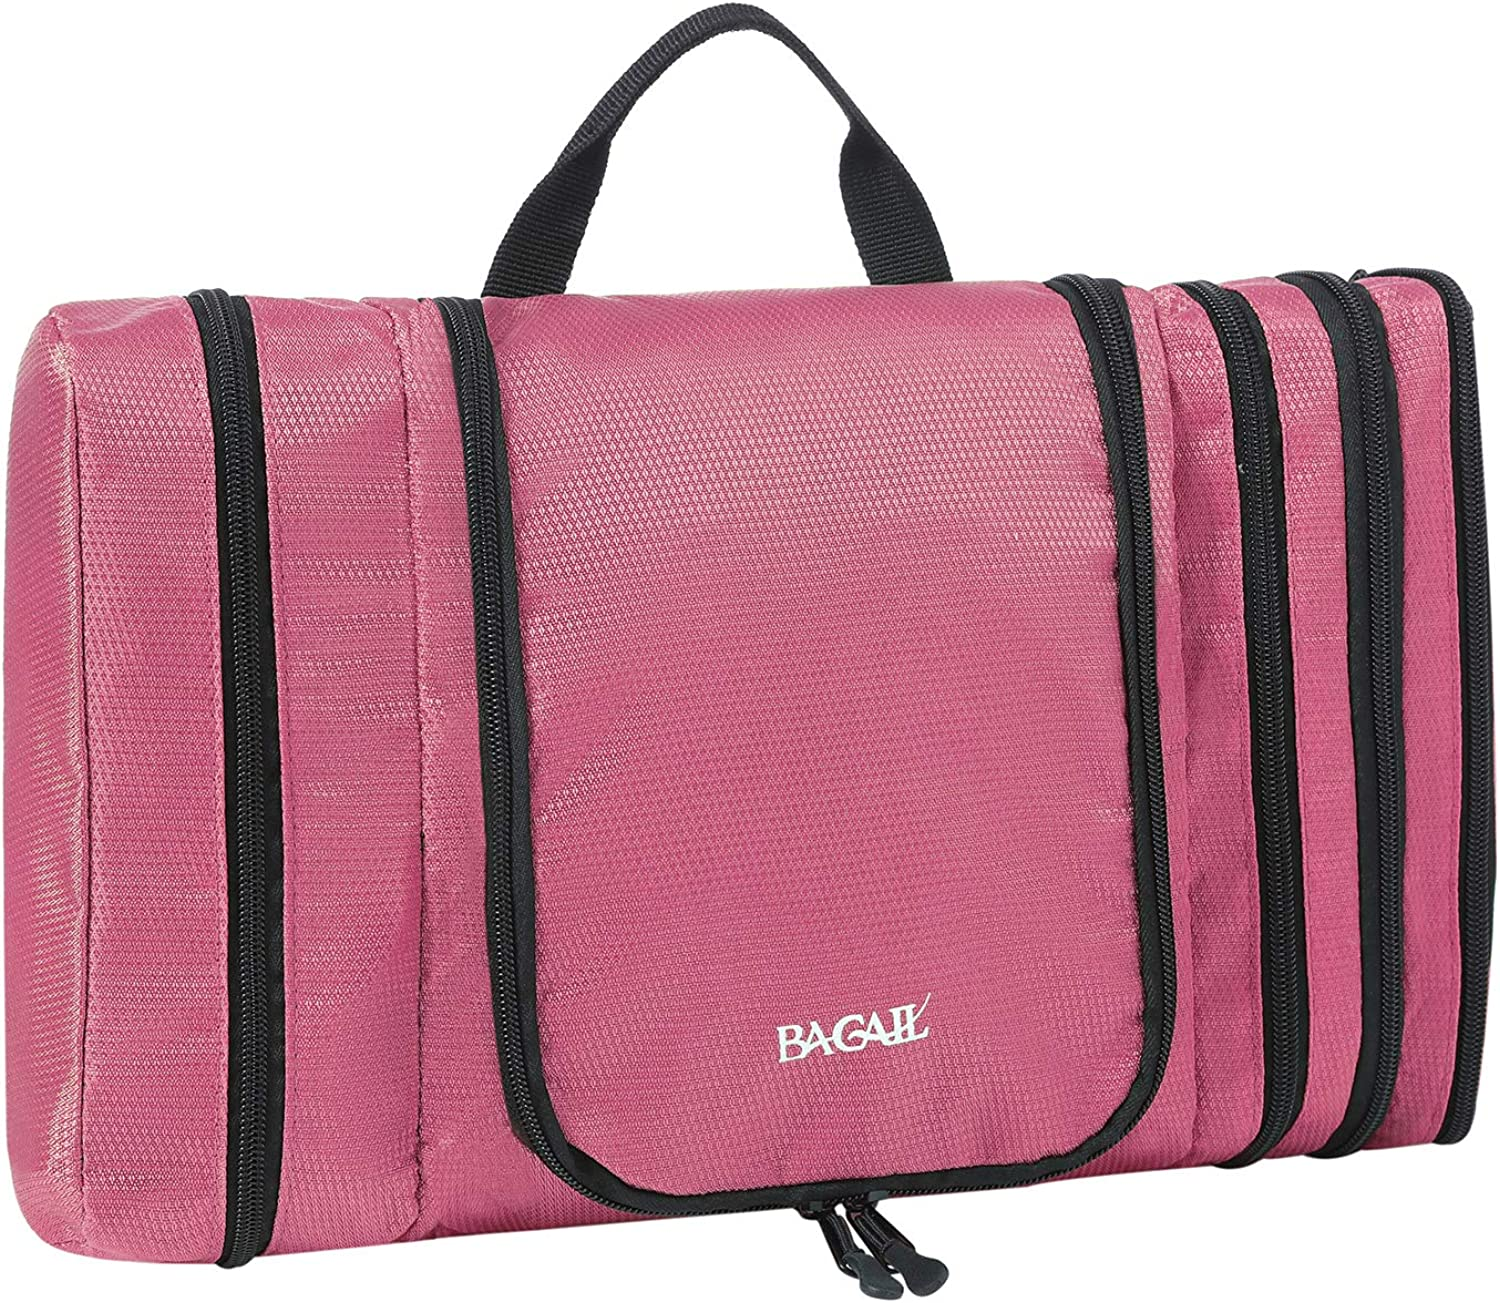 Bagail Pack It Flat Toiletry Kit for Men and Women Waterproof, Portable and Spacious Travel Cosmetic Organizer Bag for Travel Accessories,Personal Items, Makeup and Shaving